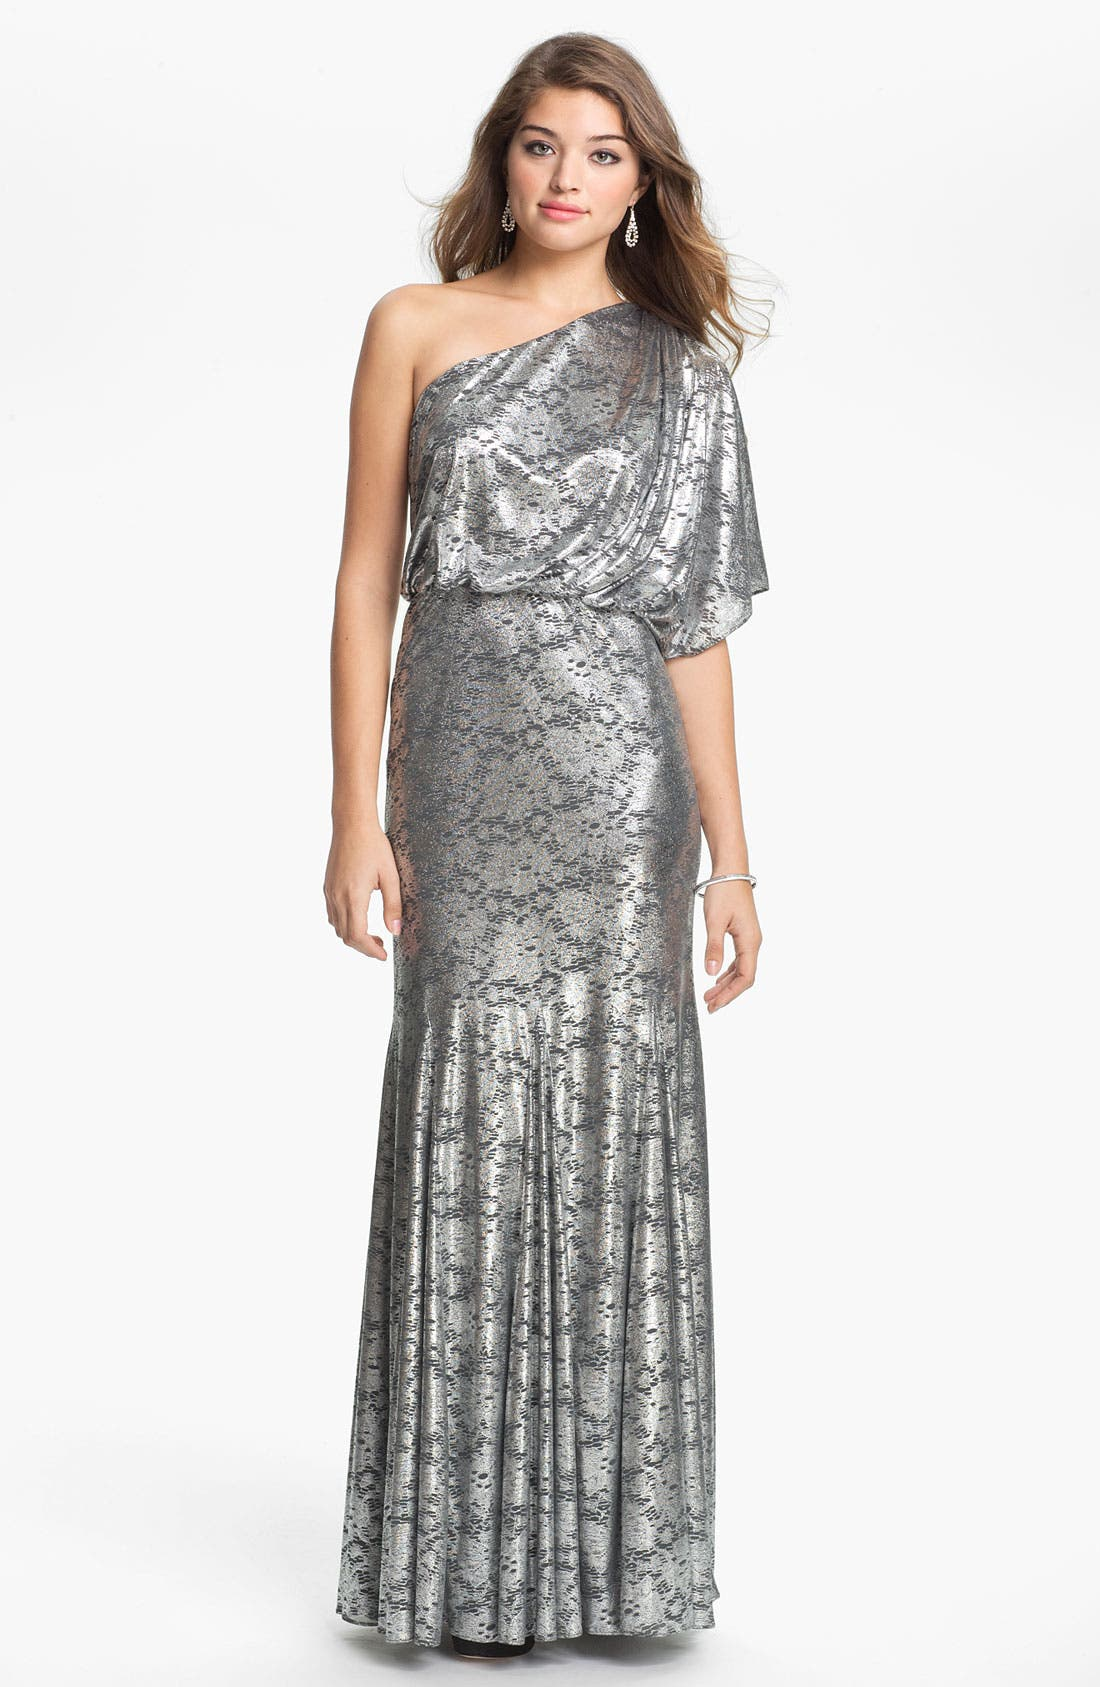 Alternate Image 1 Selected - Adrianna Papell One Shoulder Metallic Blouson Gown